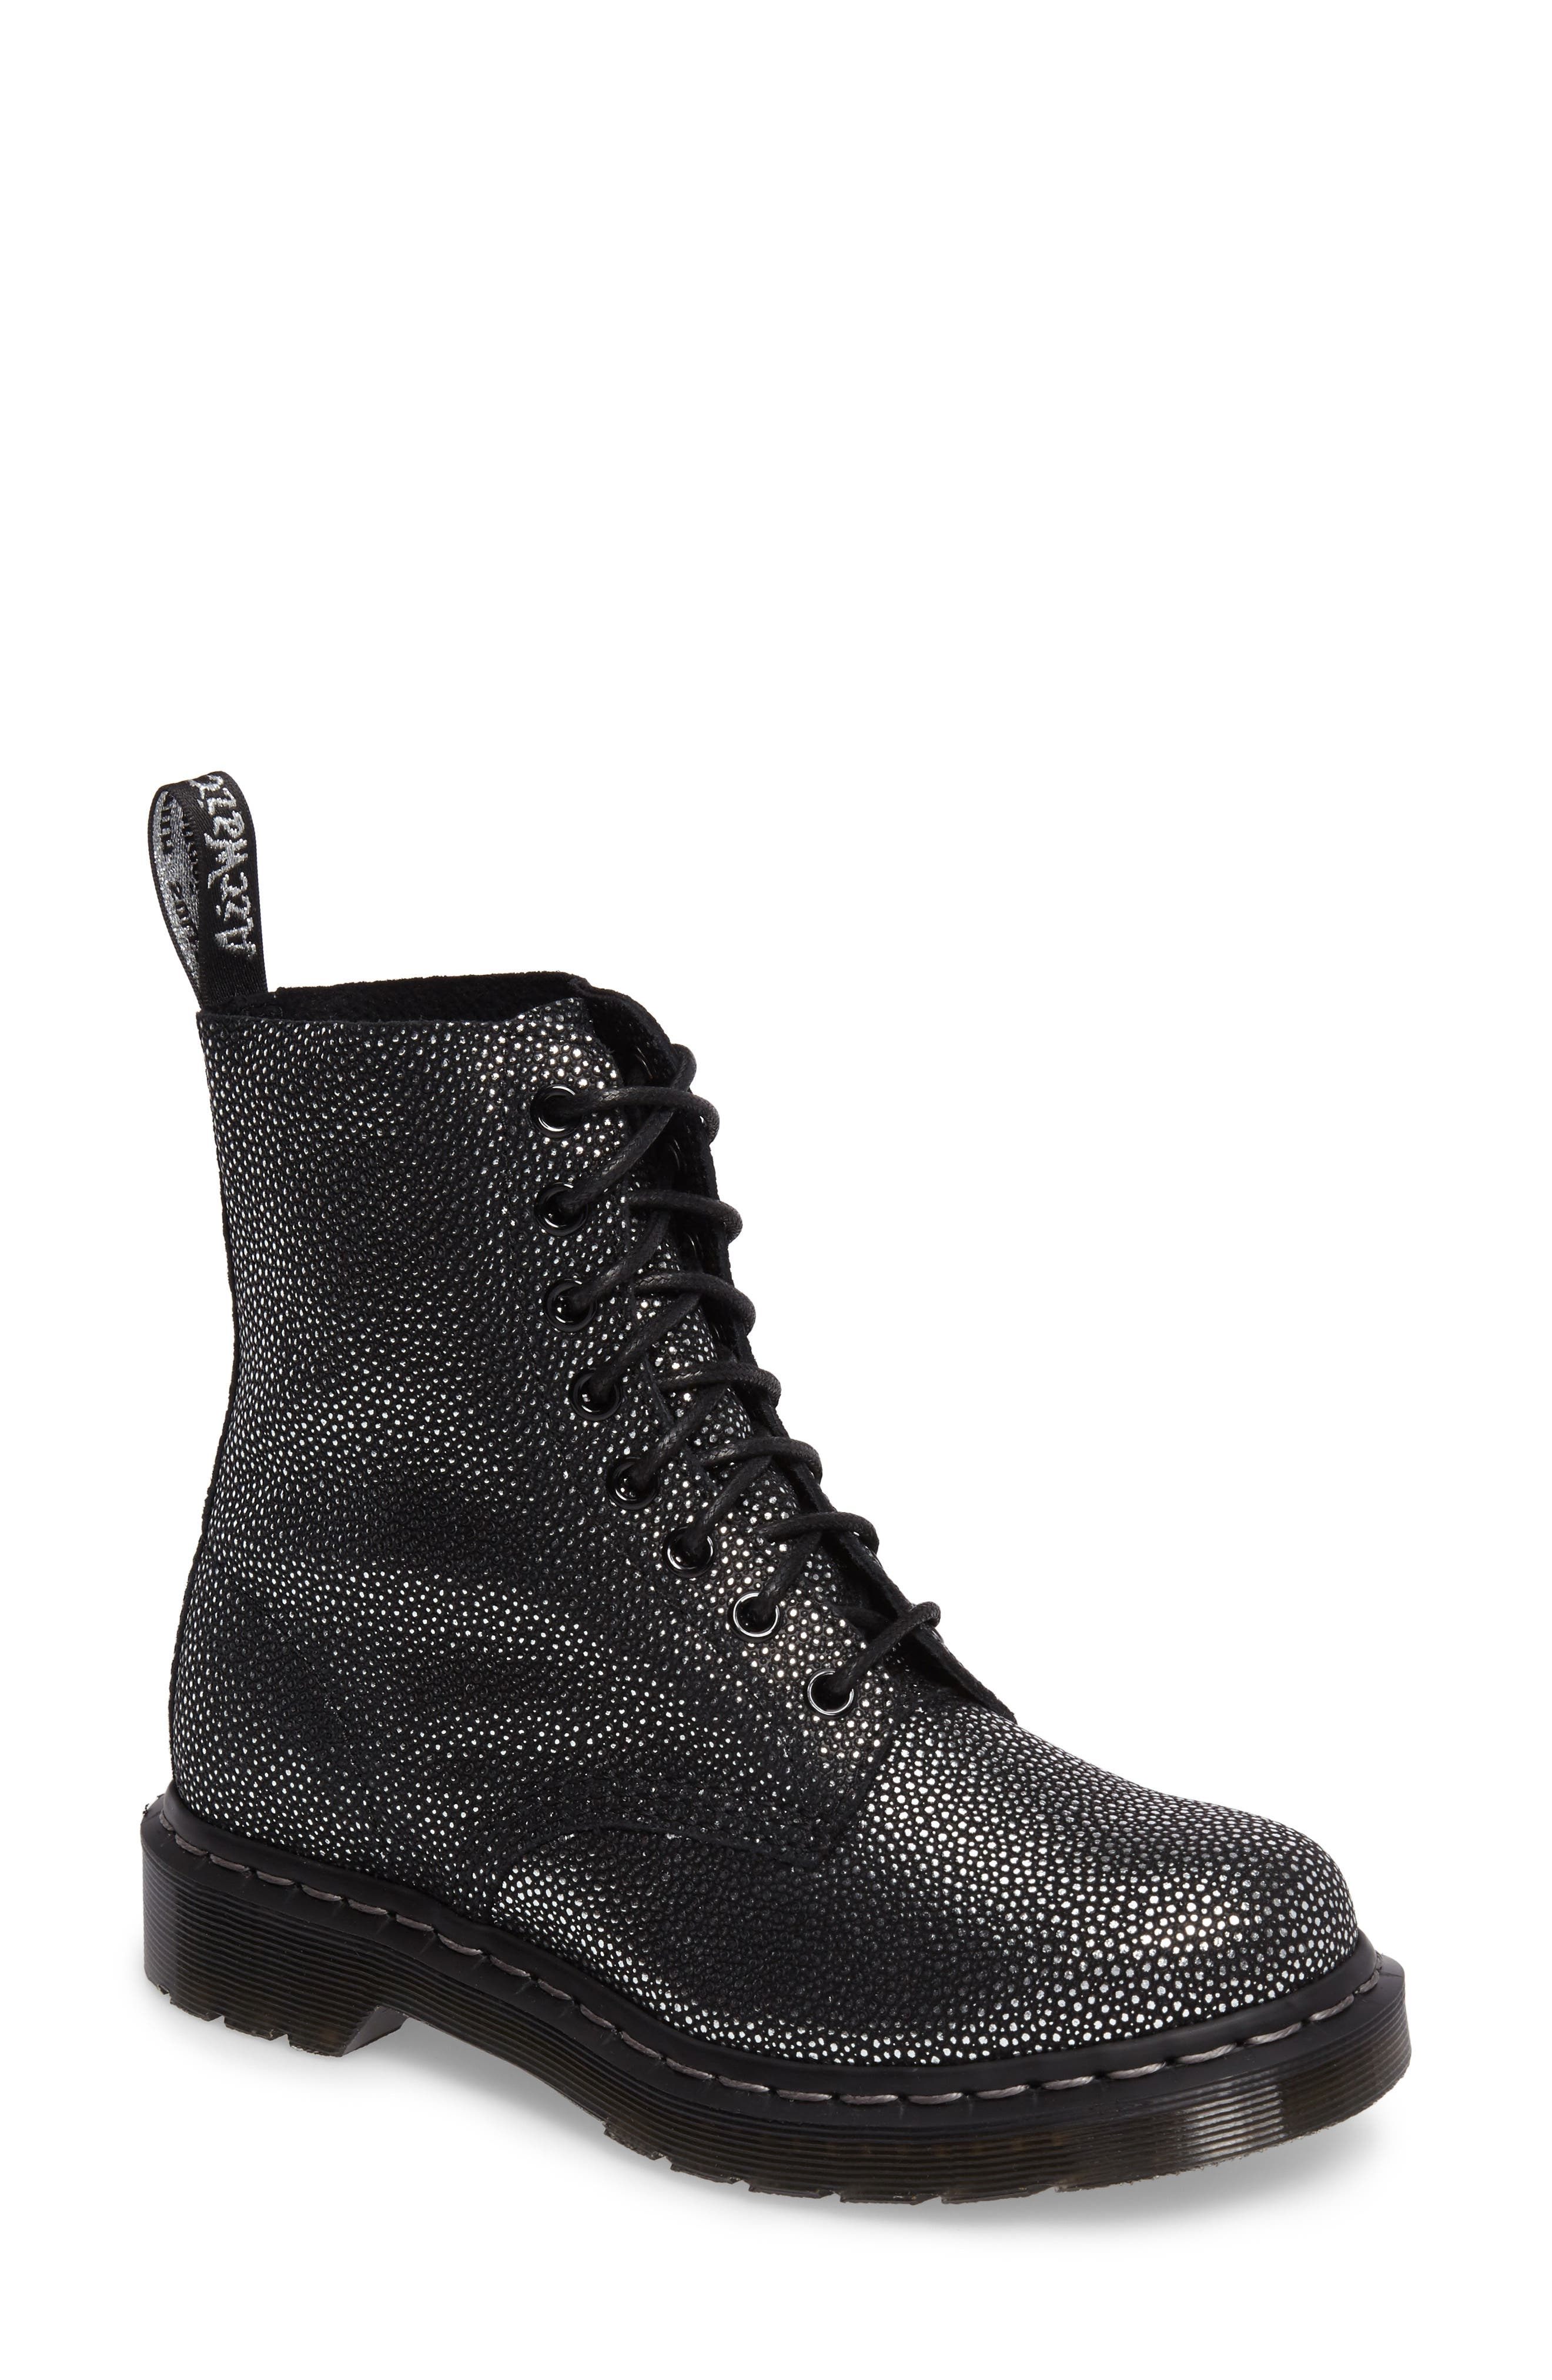 Main Image - Dr. Martens 1460 Boot (Women)